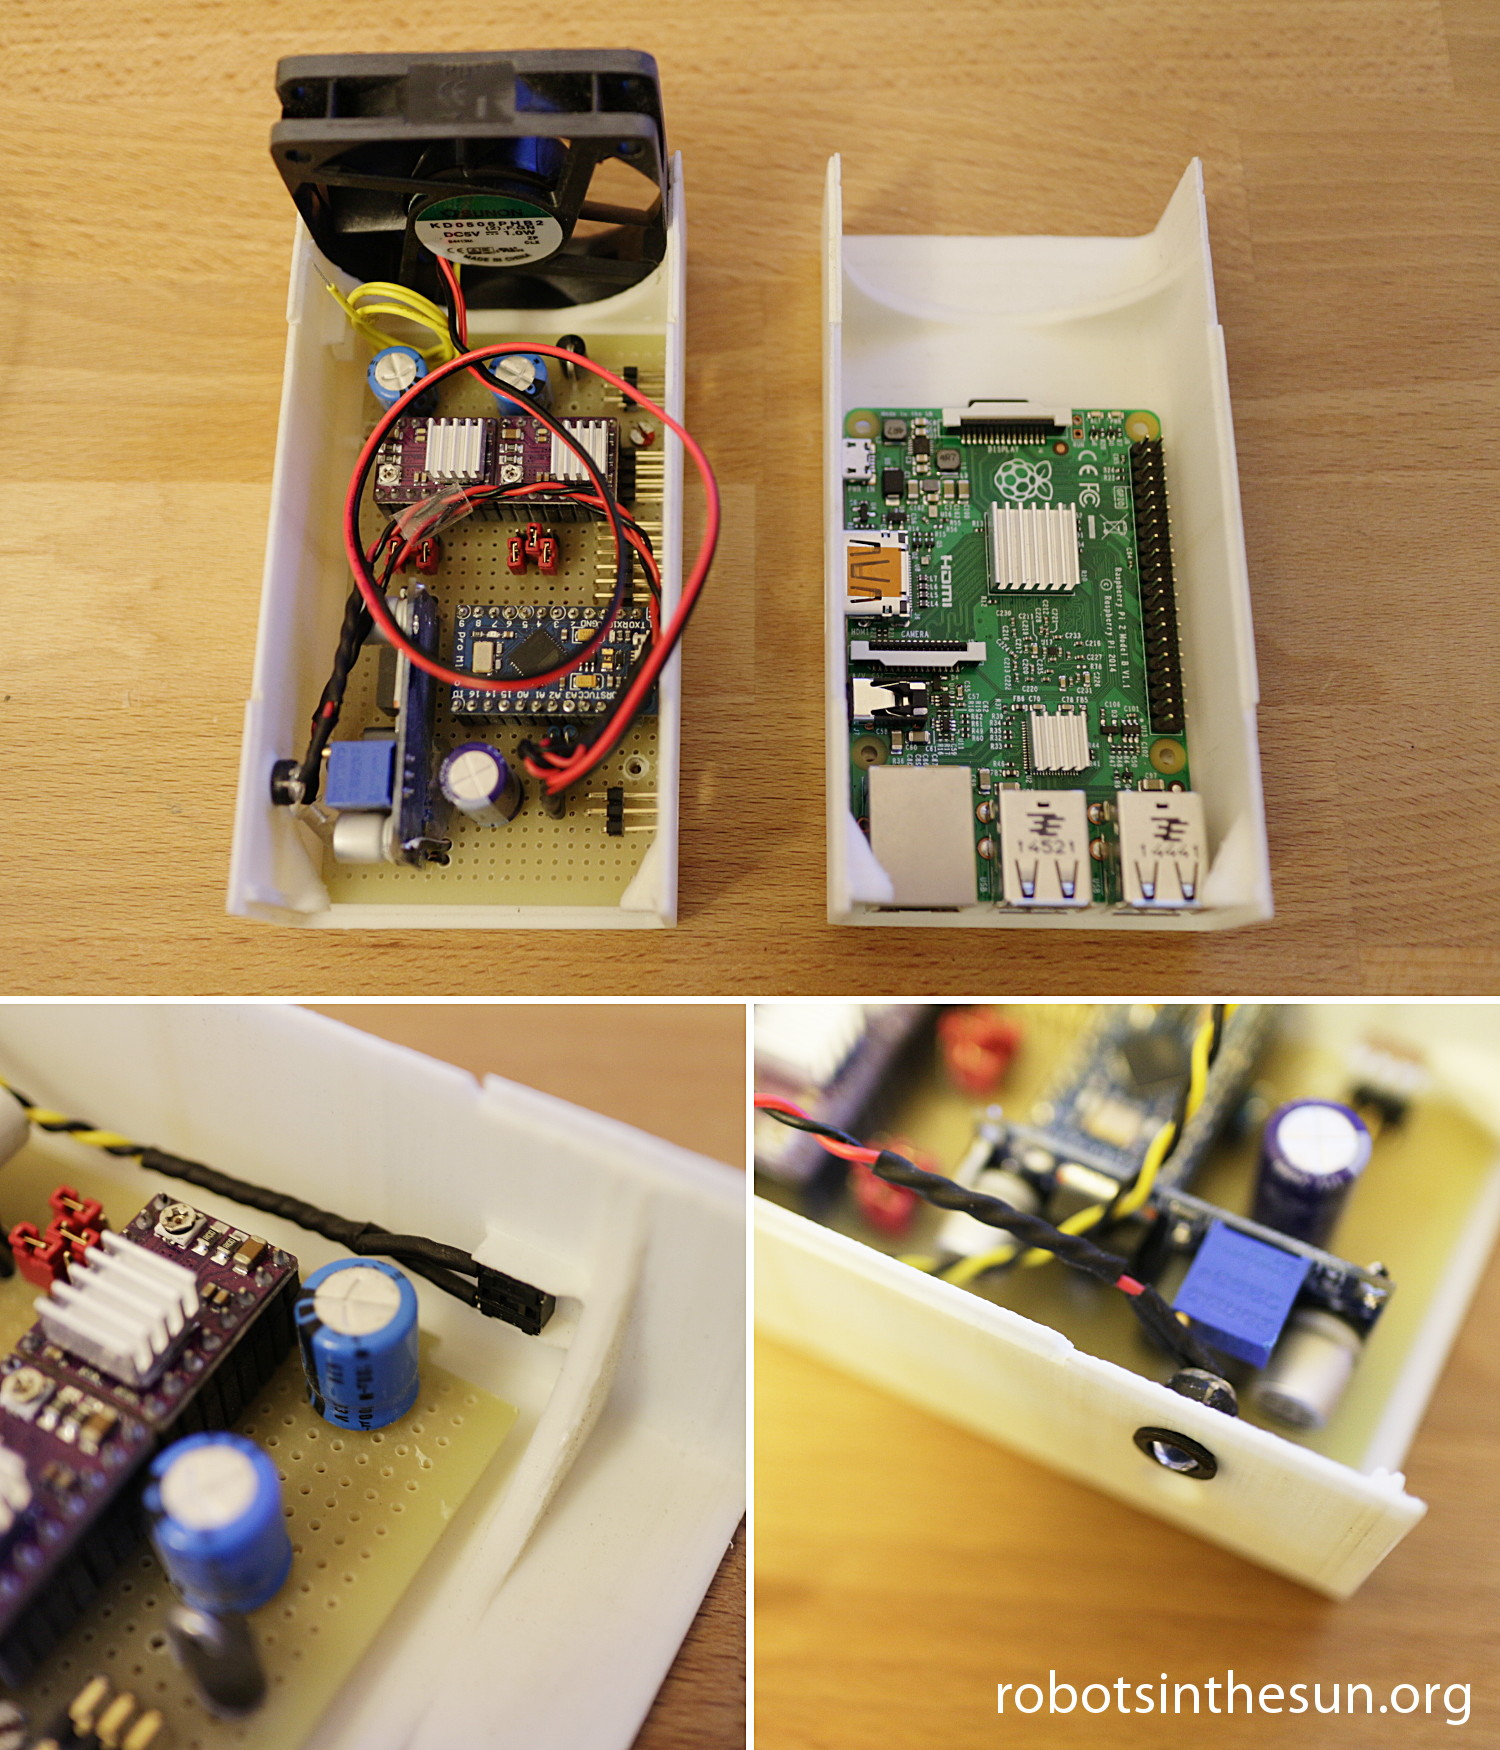 Photographs showing a 3d printed plastics box carrying a 3d resin printer electronics board and a Raspberry Pi 2